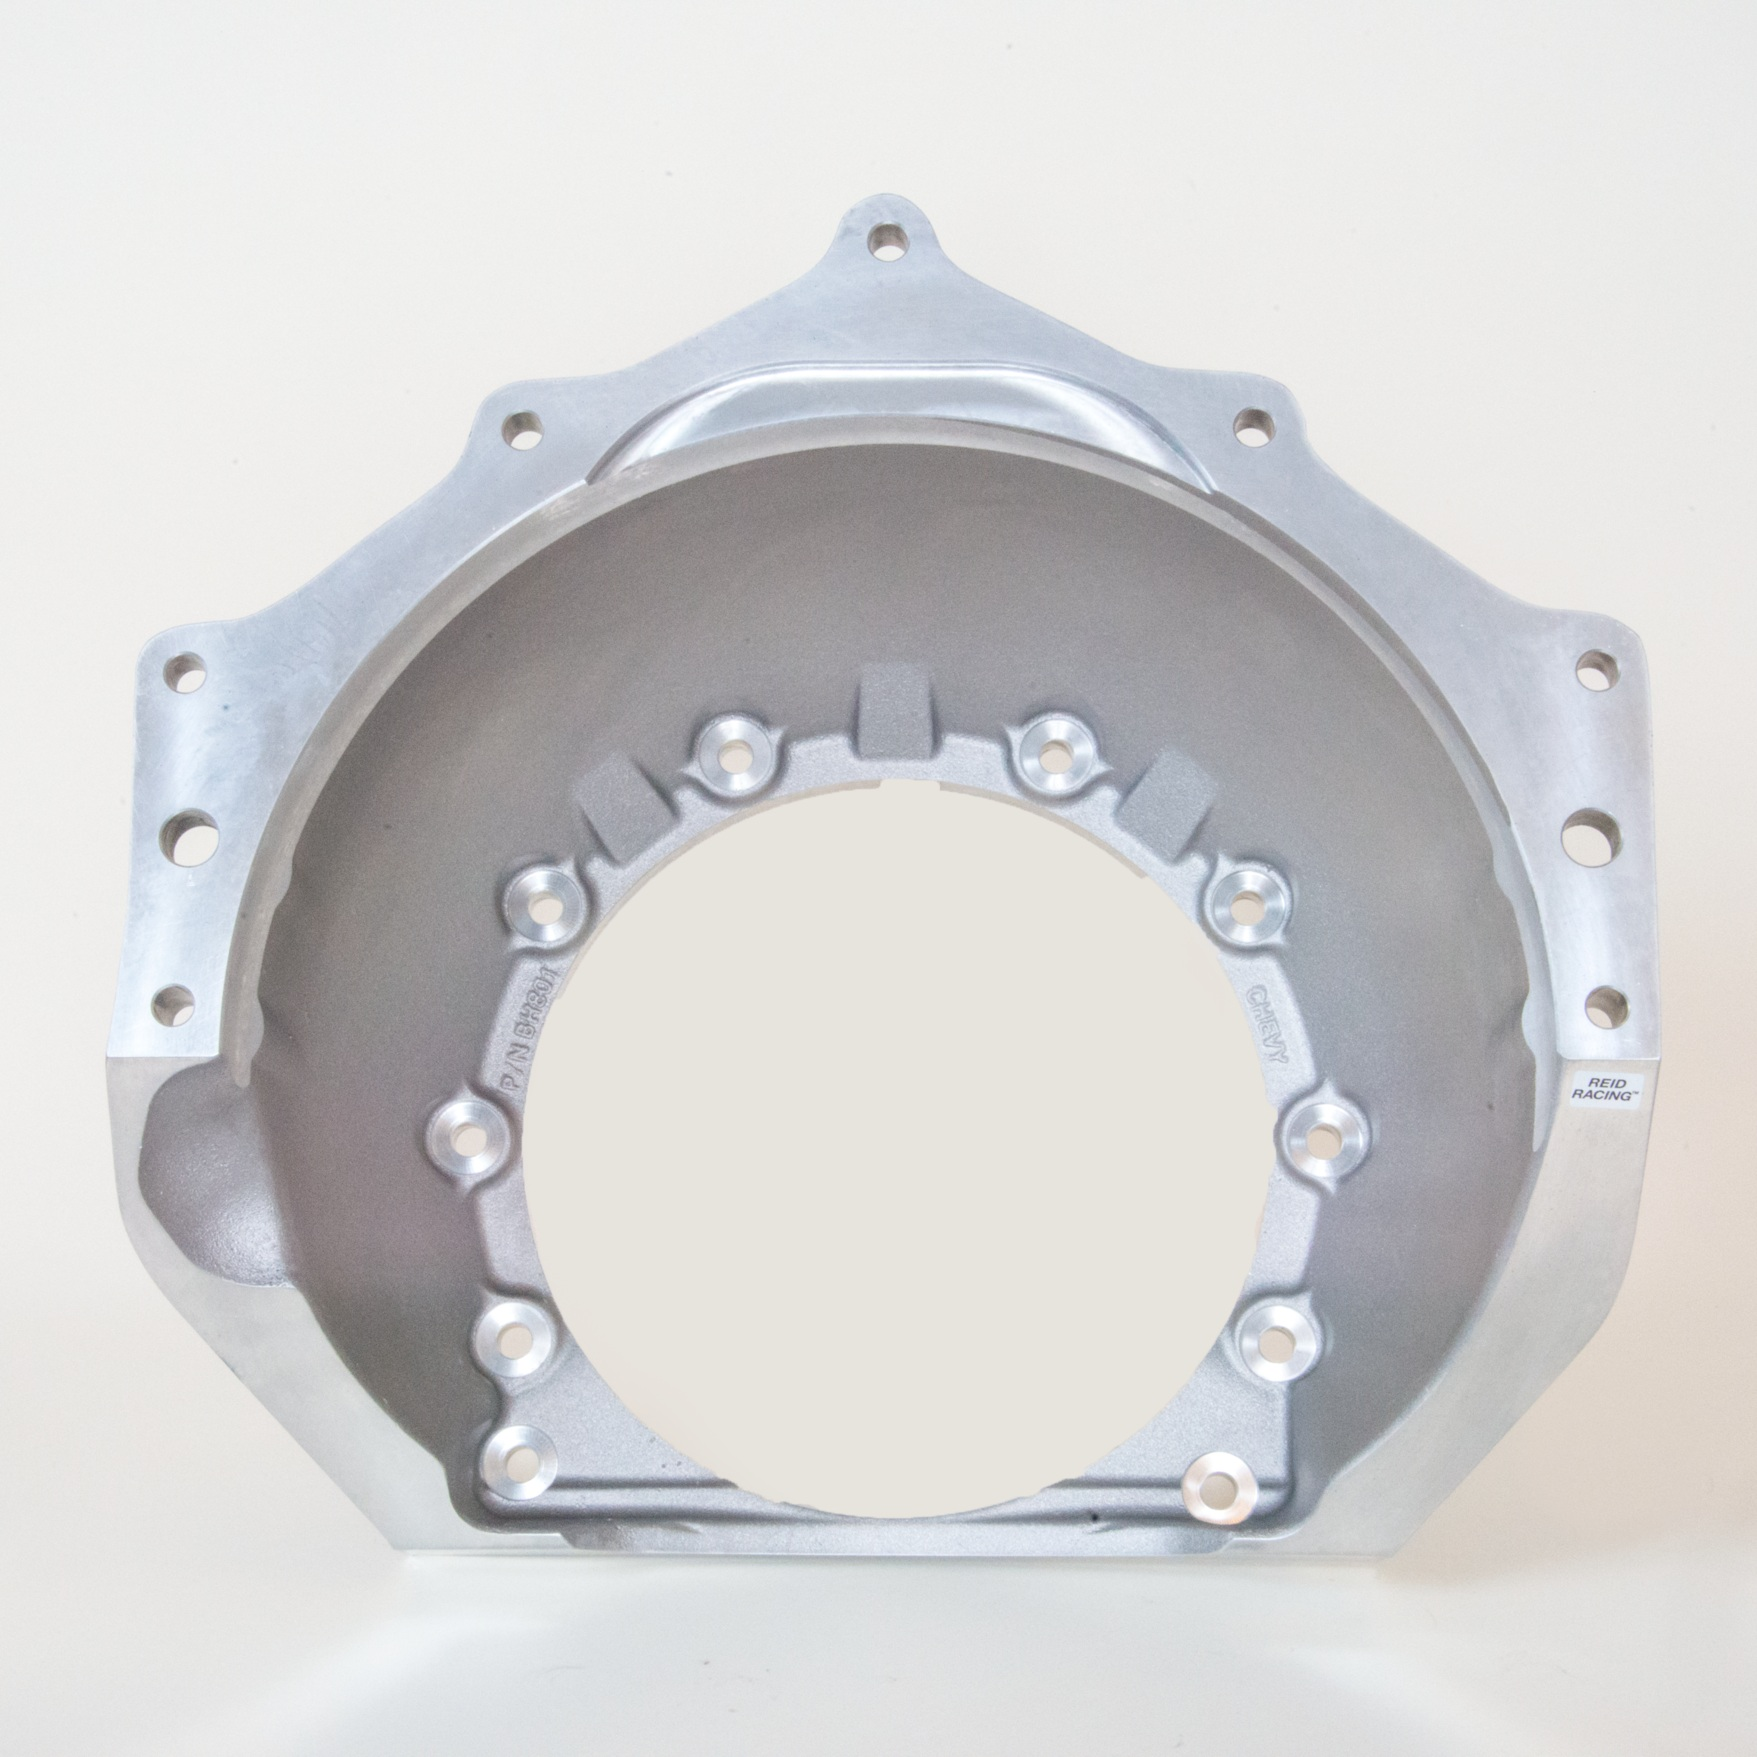 Chevrolet Bellhousing for 4L80e (BH801) -